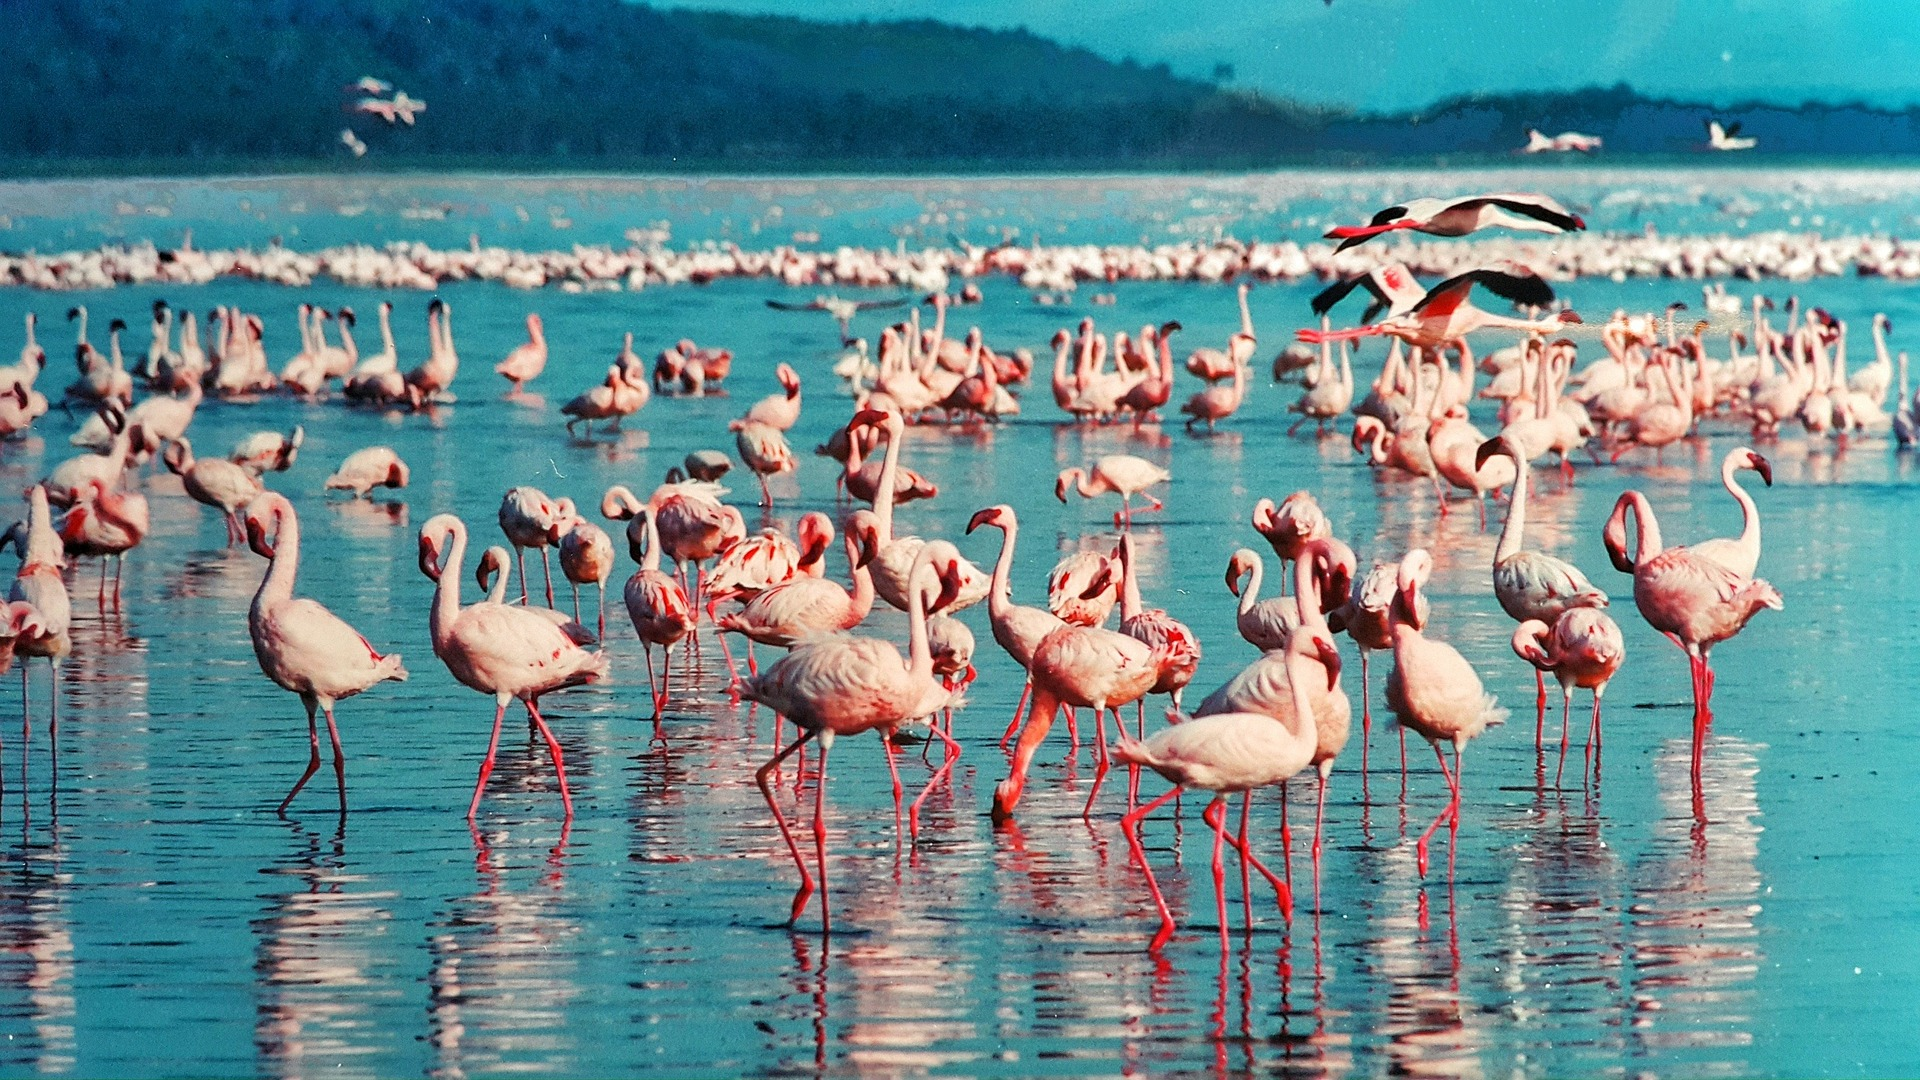 Lago repleto de flamingos